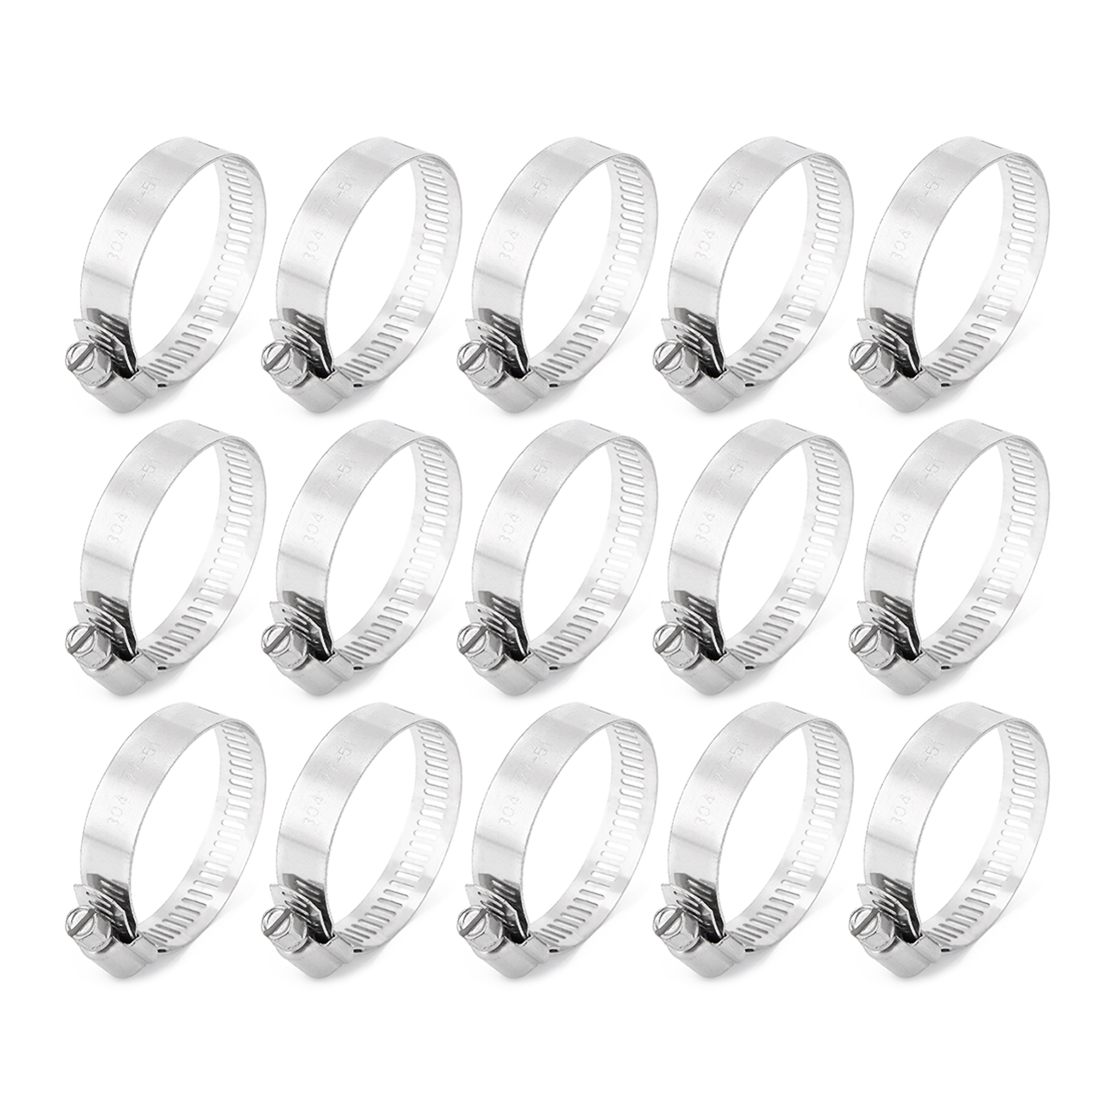 27-51mm Clamping Range 304 Stainless Steel American Worm Gear Hose Clamps 15pcs